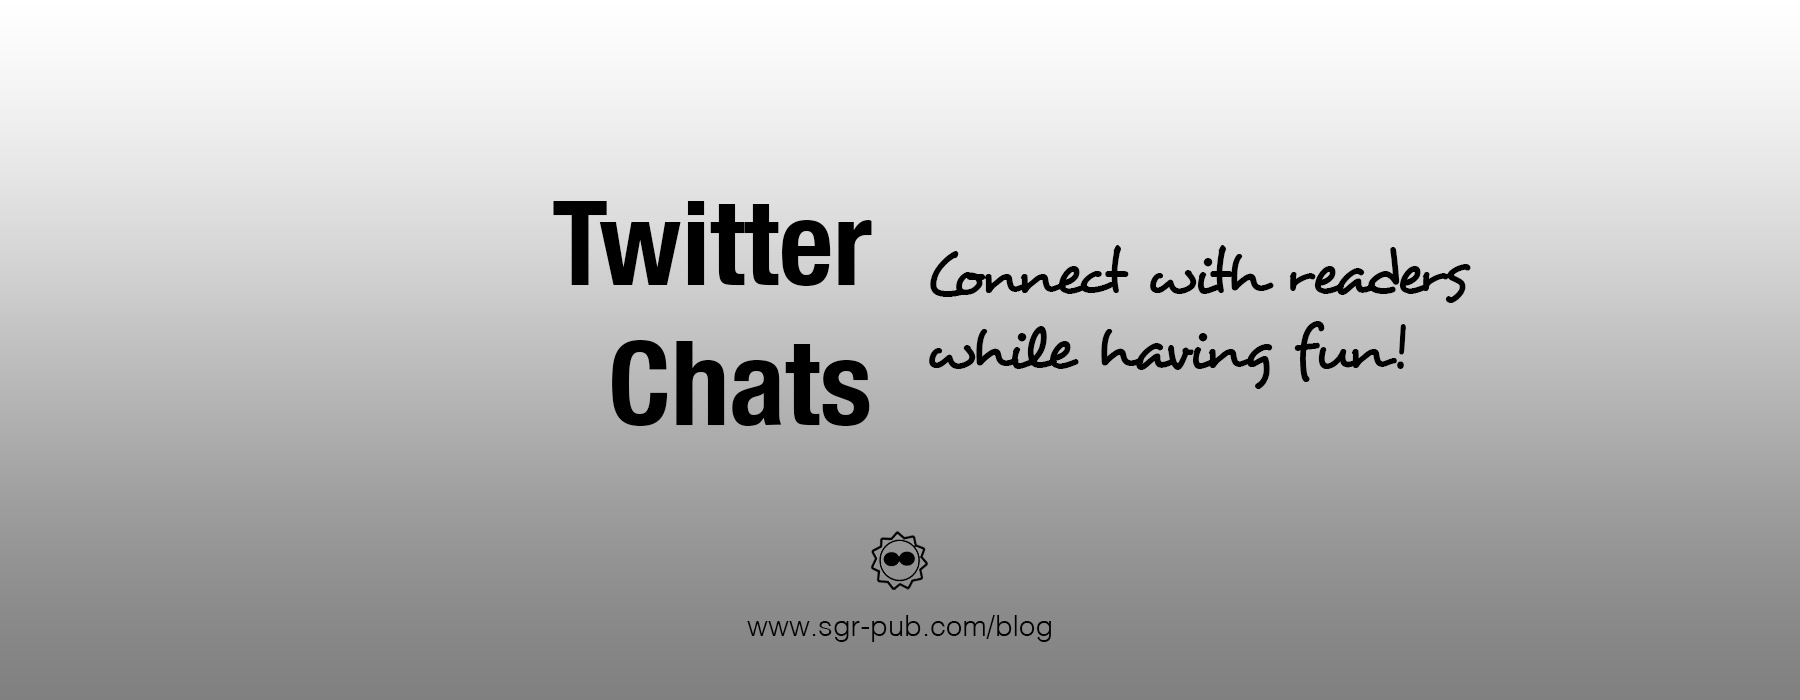 Twitter chats help you connect with readers while having fun